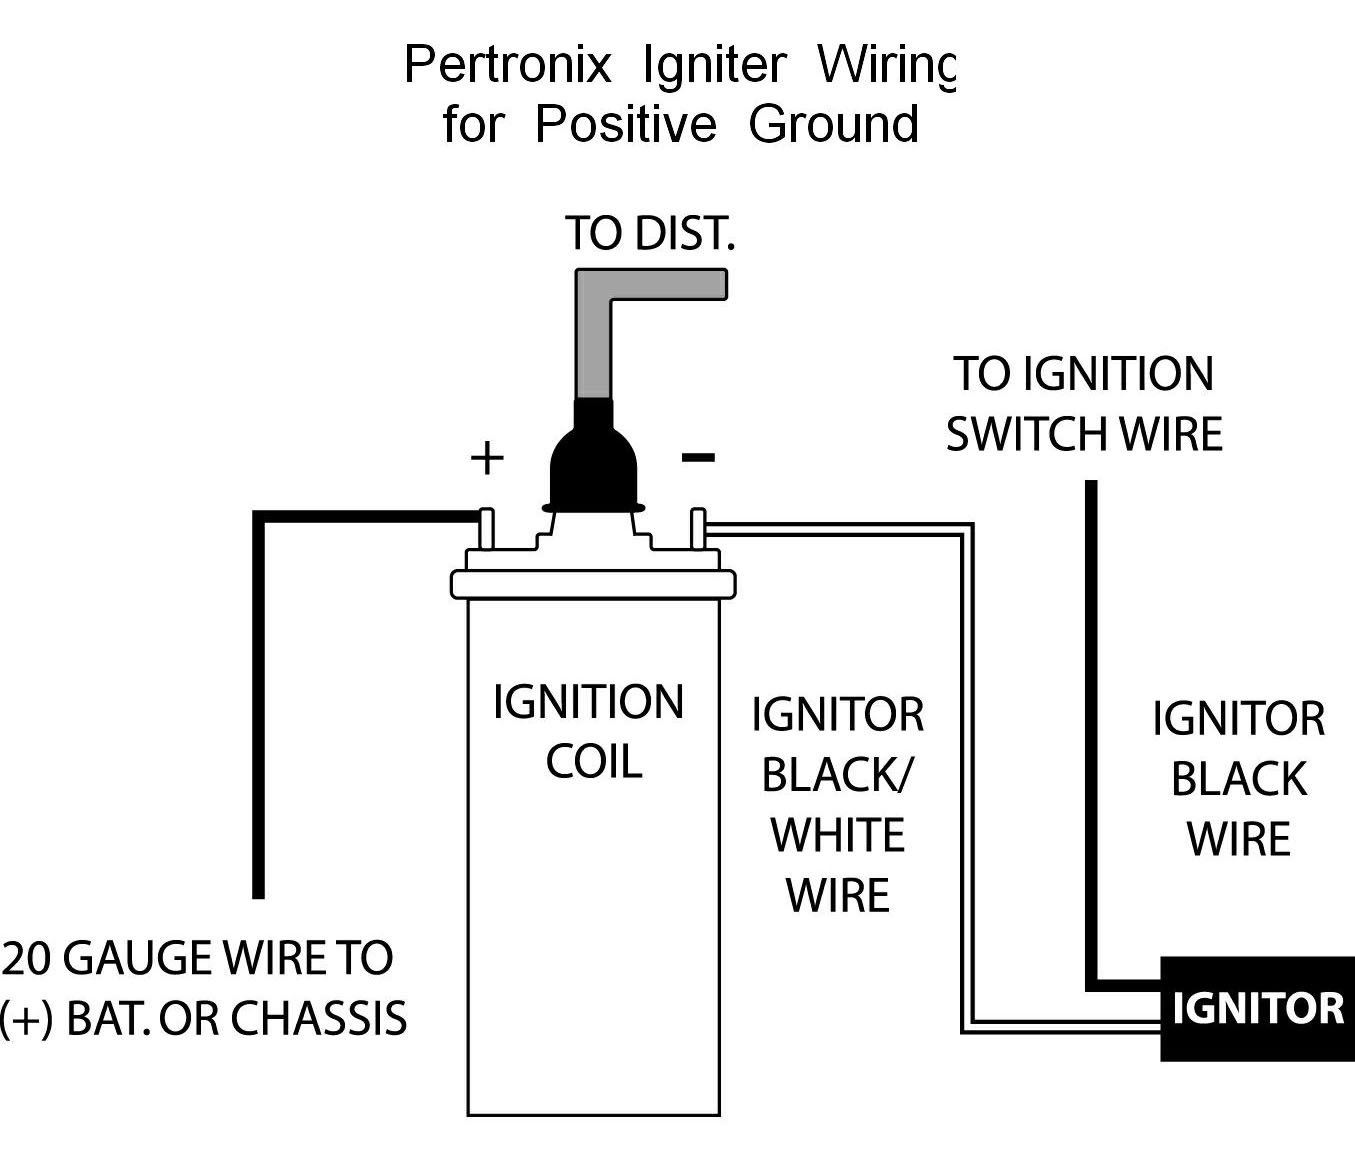 PerPosGndWiring pertronix positive ground wiring 12 volt ignition coil wiring diagram at gsmx.co